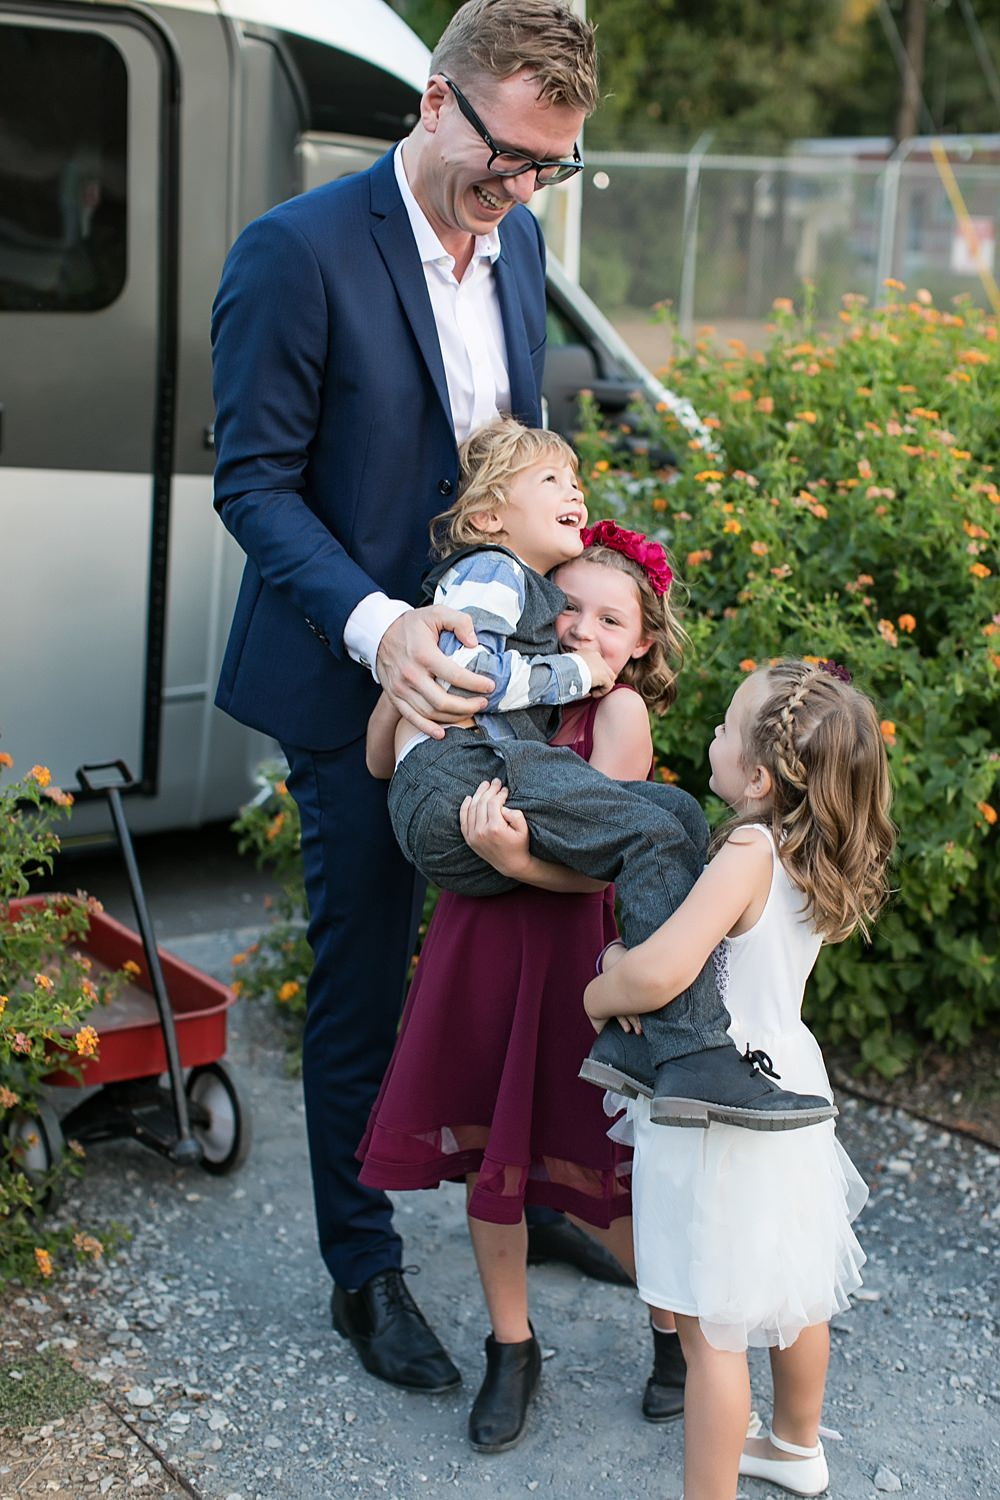 eventide brewery wedding : josie and bryan : vue photography0027